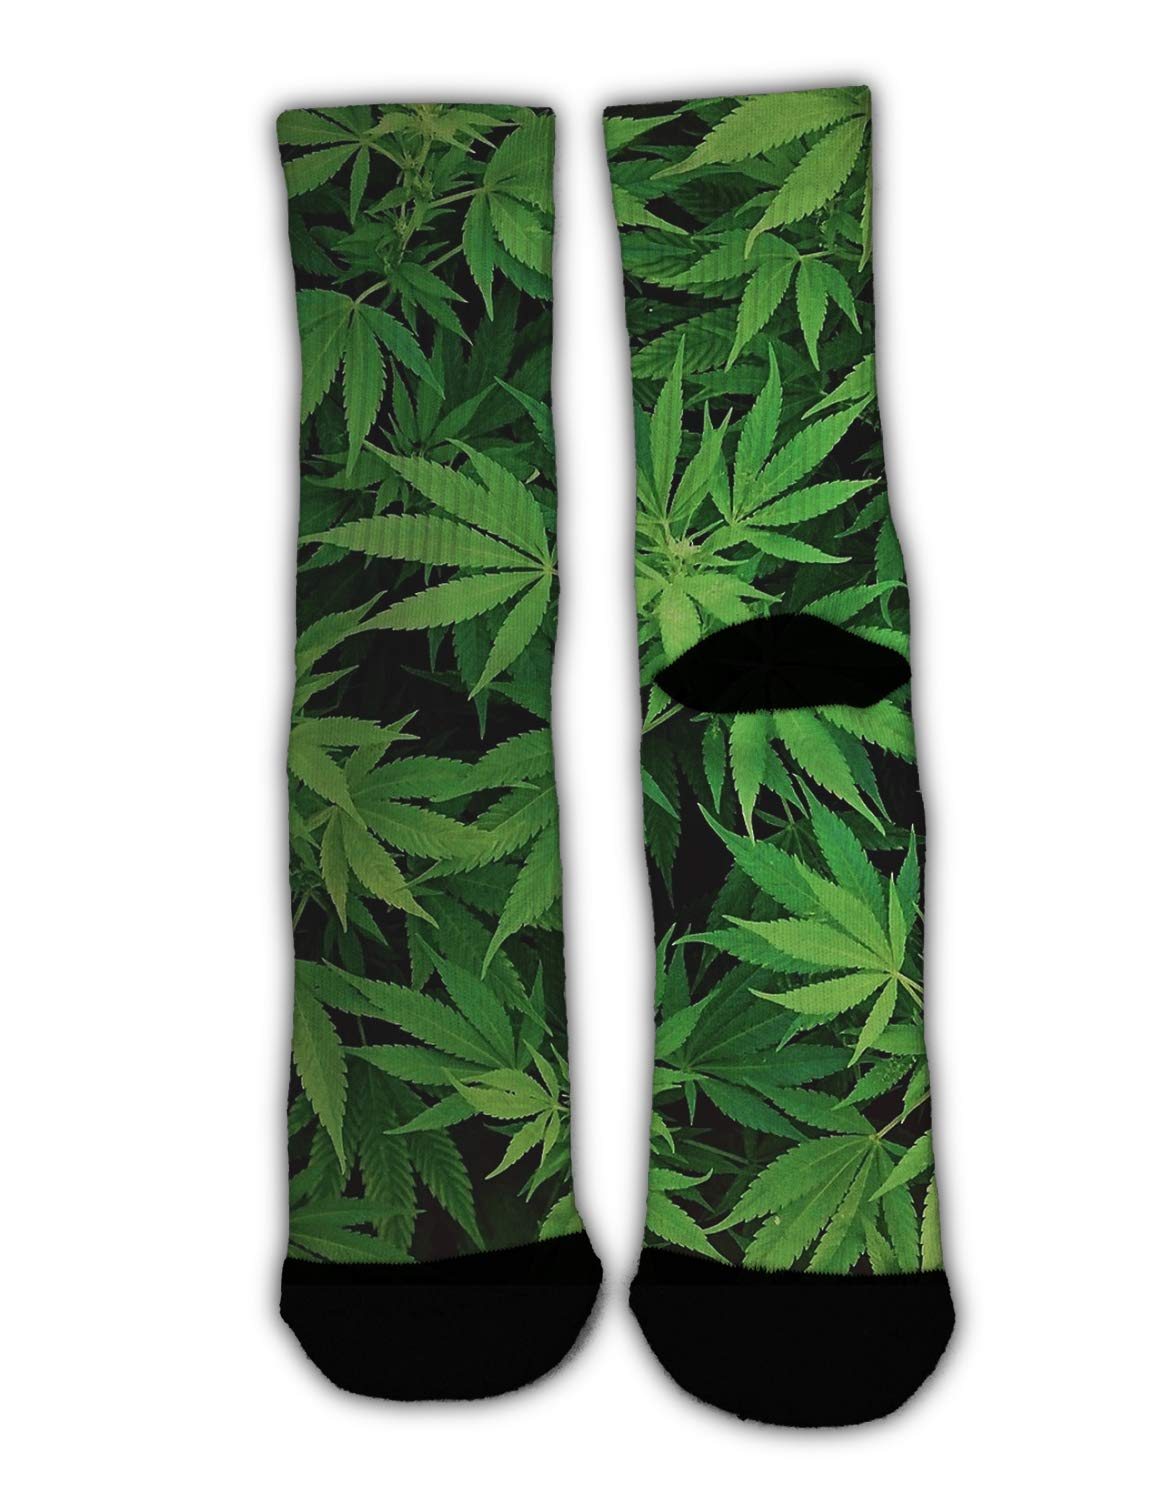 MrDecor Novelty Cool Crazy Funny Dress Socks,Cannabis Leaf Green Weed Marijuana Cotton Crew Socks, Gifts for Men